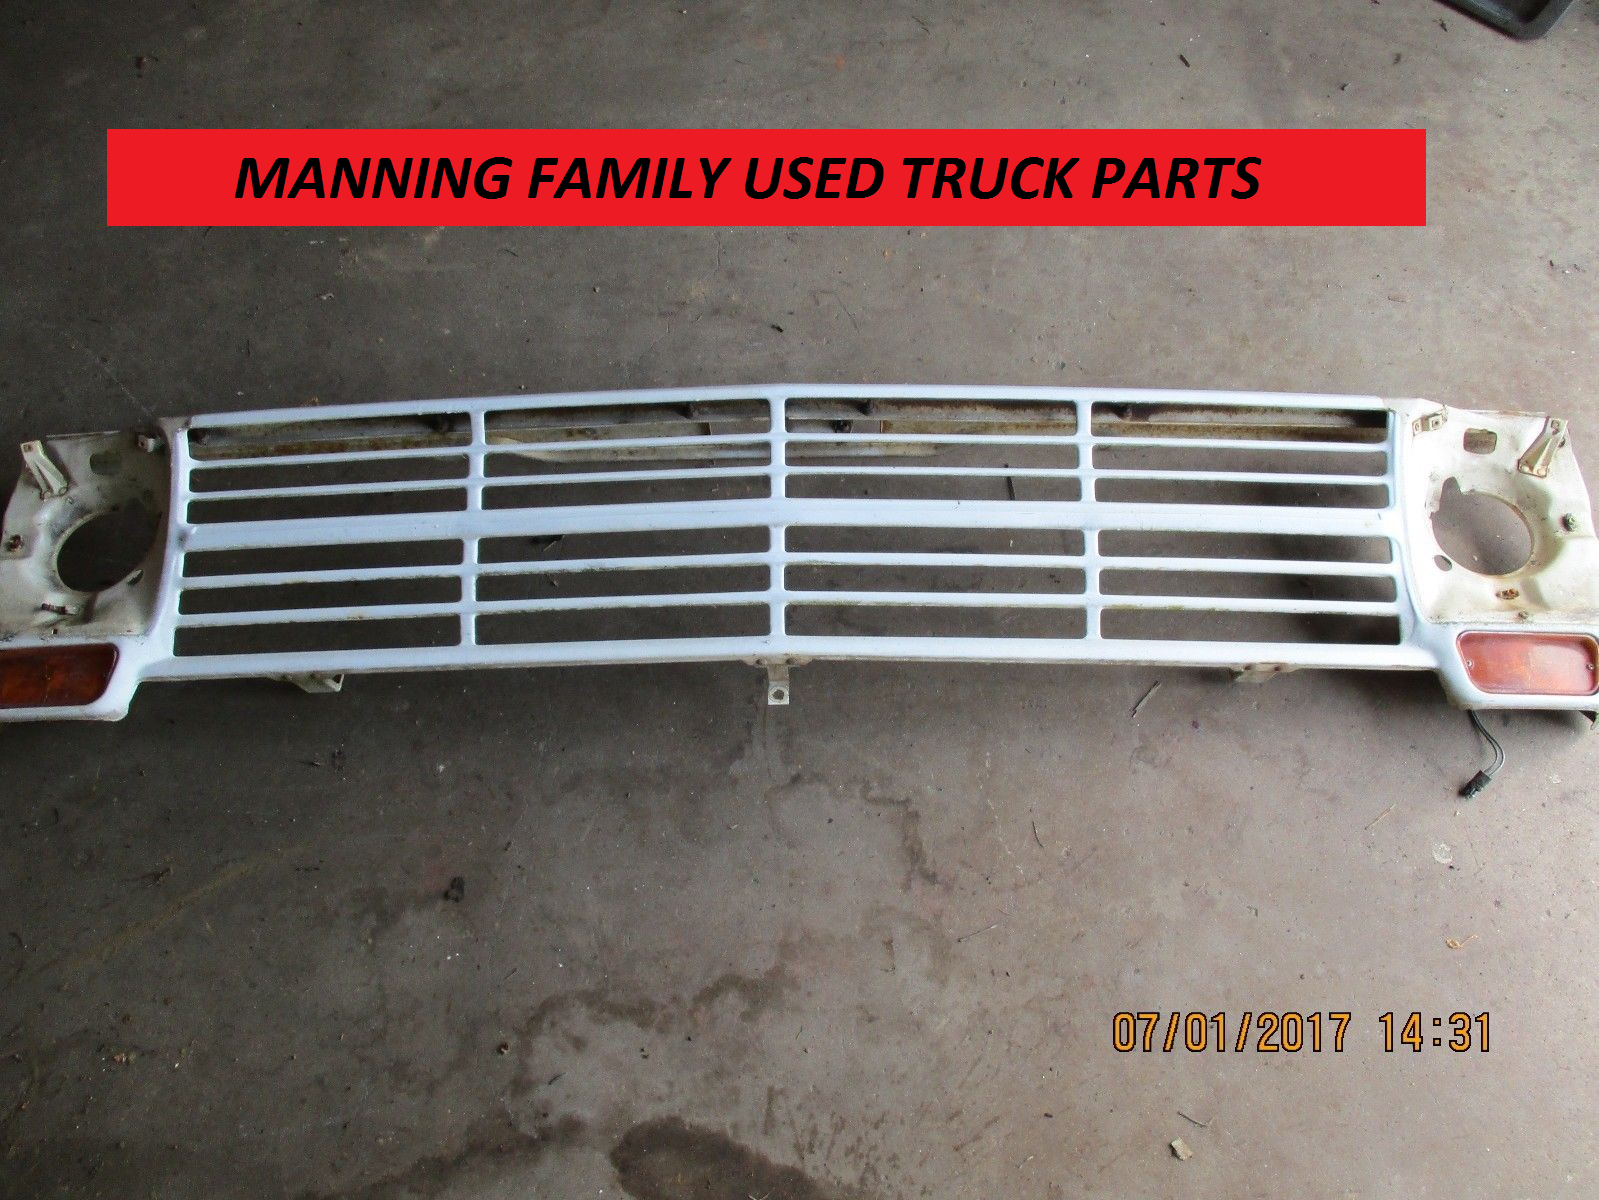 MANNING FAMILY USED TRUCK PARTS